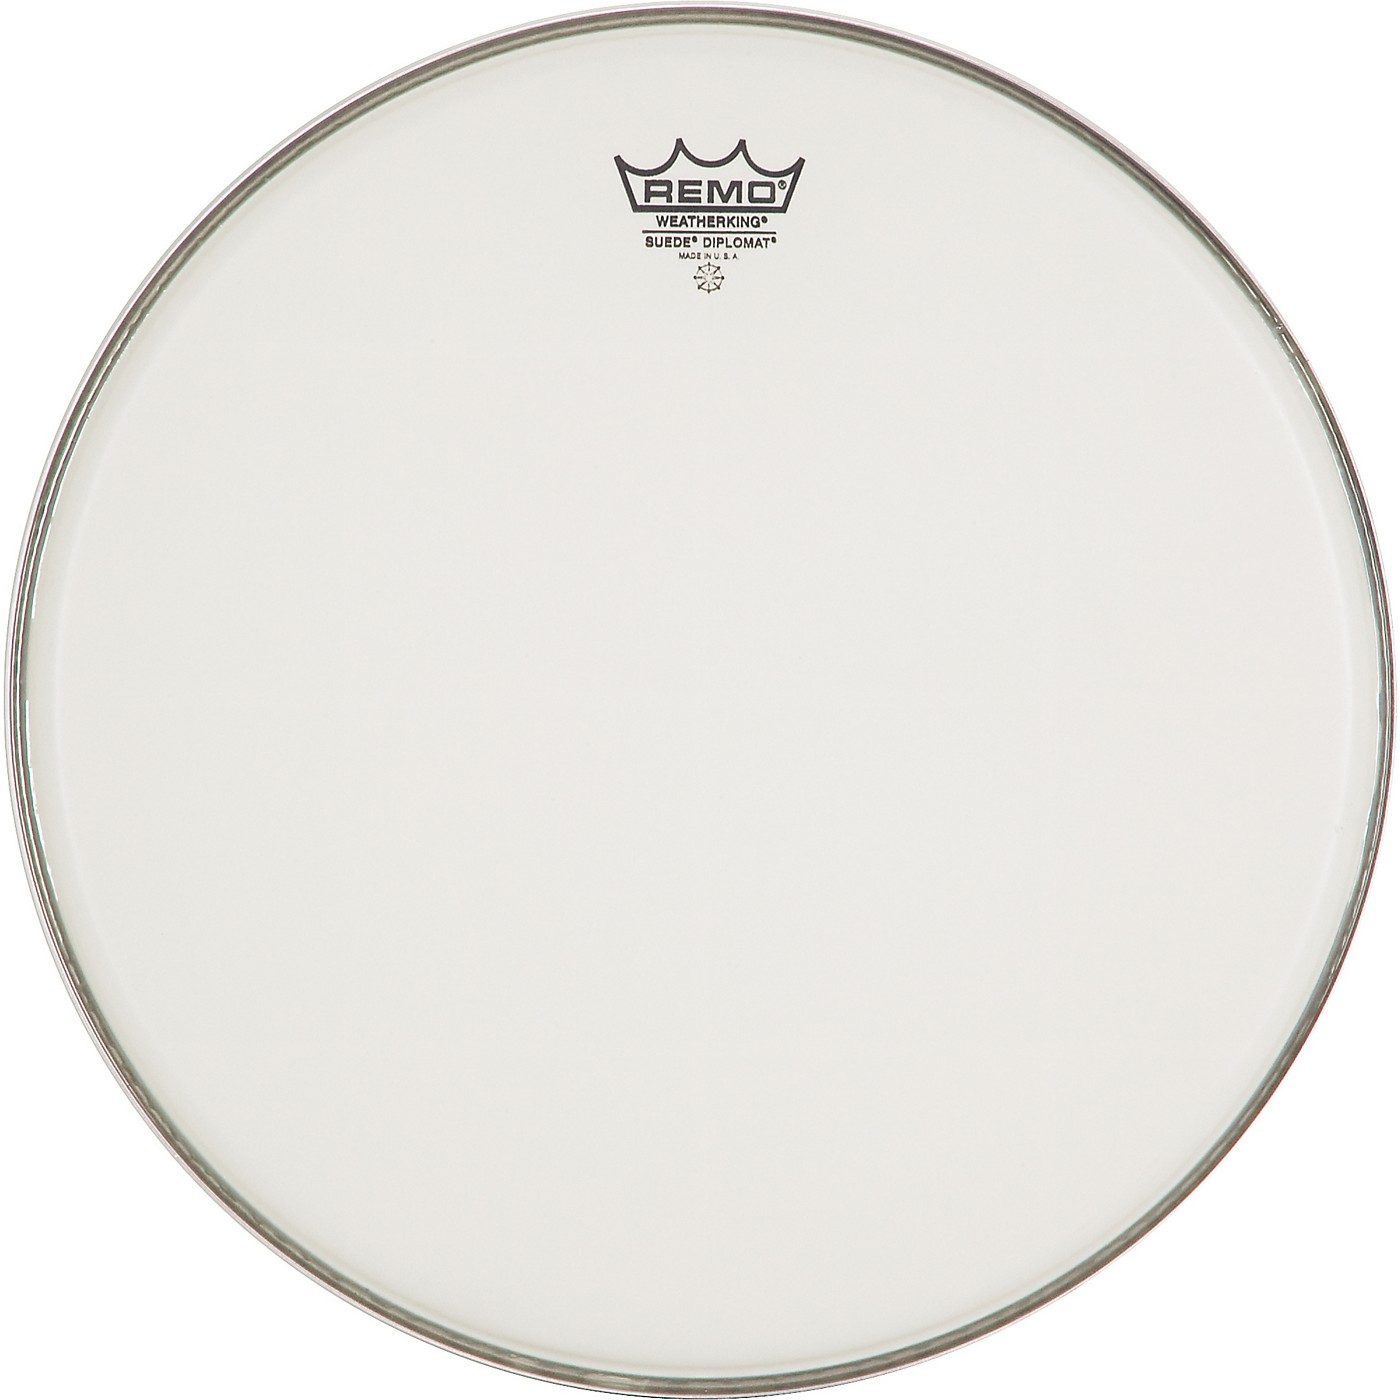 Remo Suede Diplomat Drum Heads thumbnail